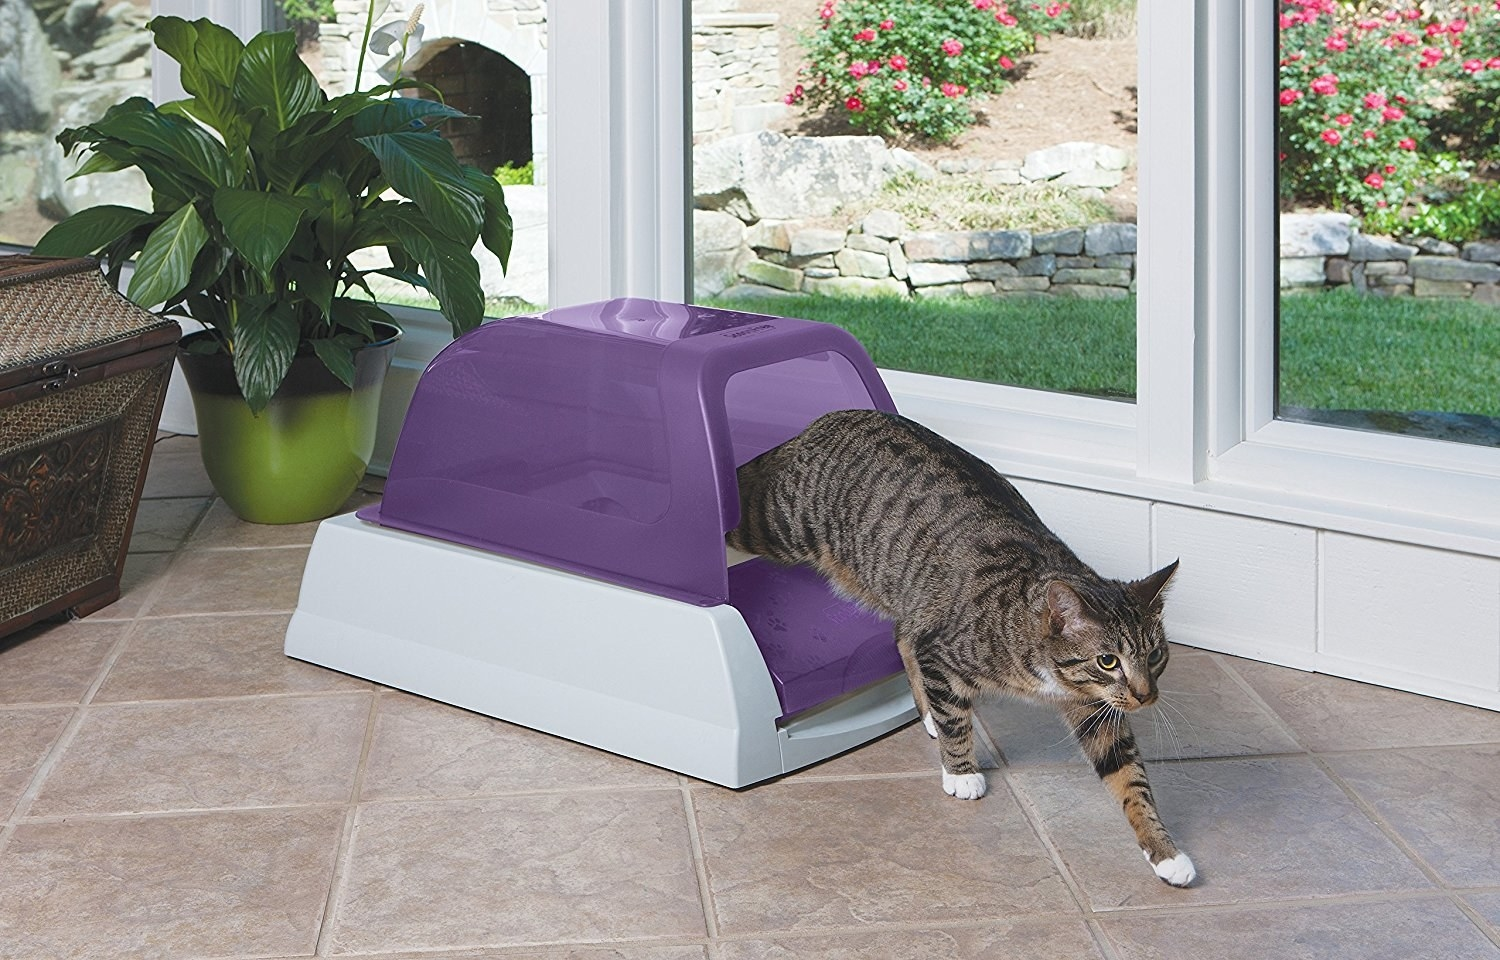 How To Keep Cats Off Front Porch